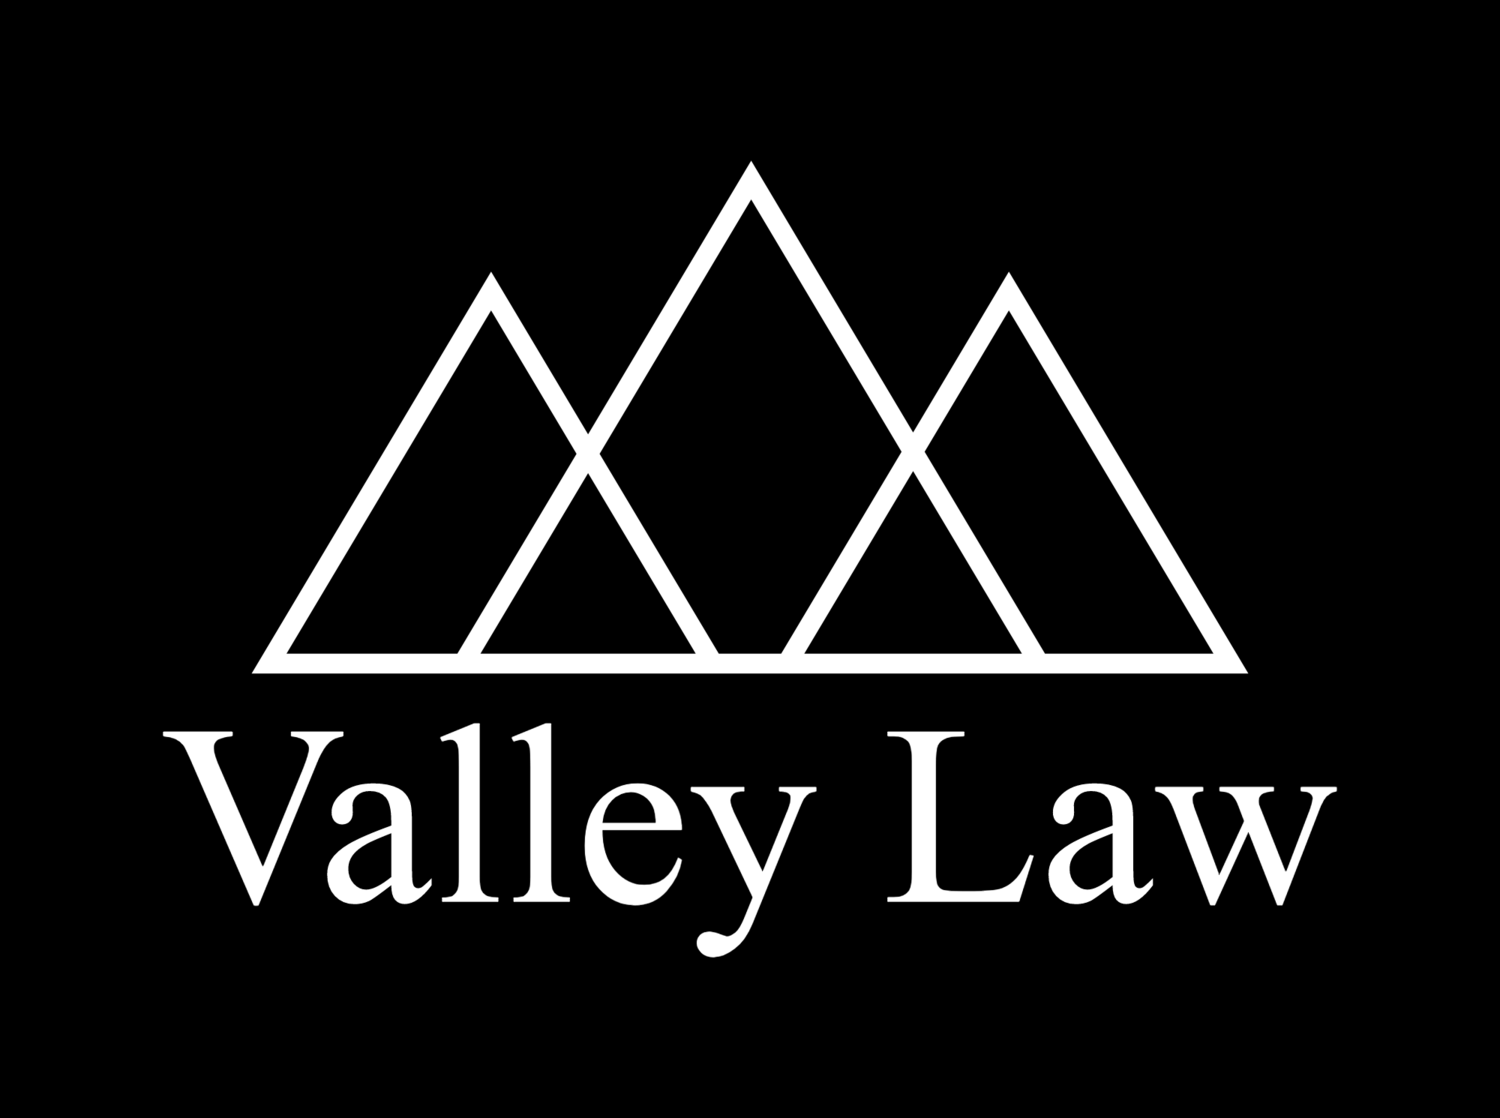 Valley Law | Salt Lake City Injury & Accident Lawyers